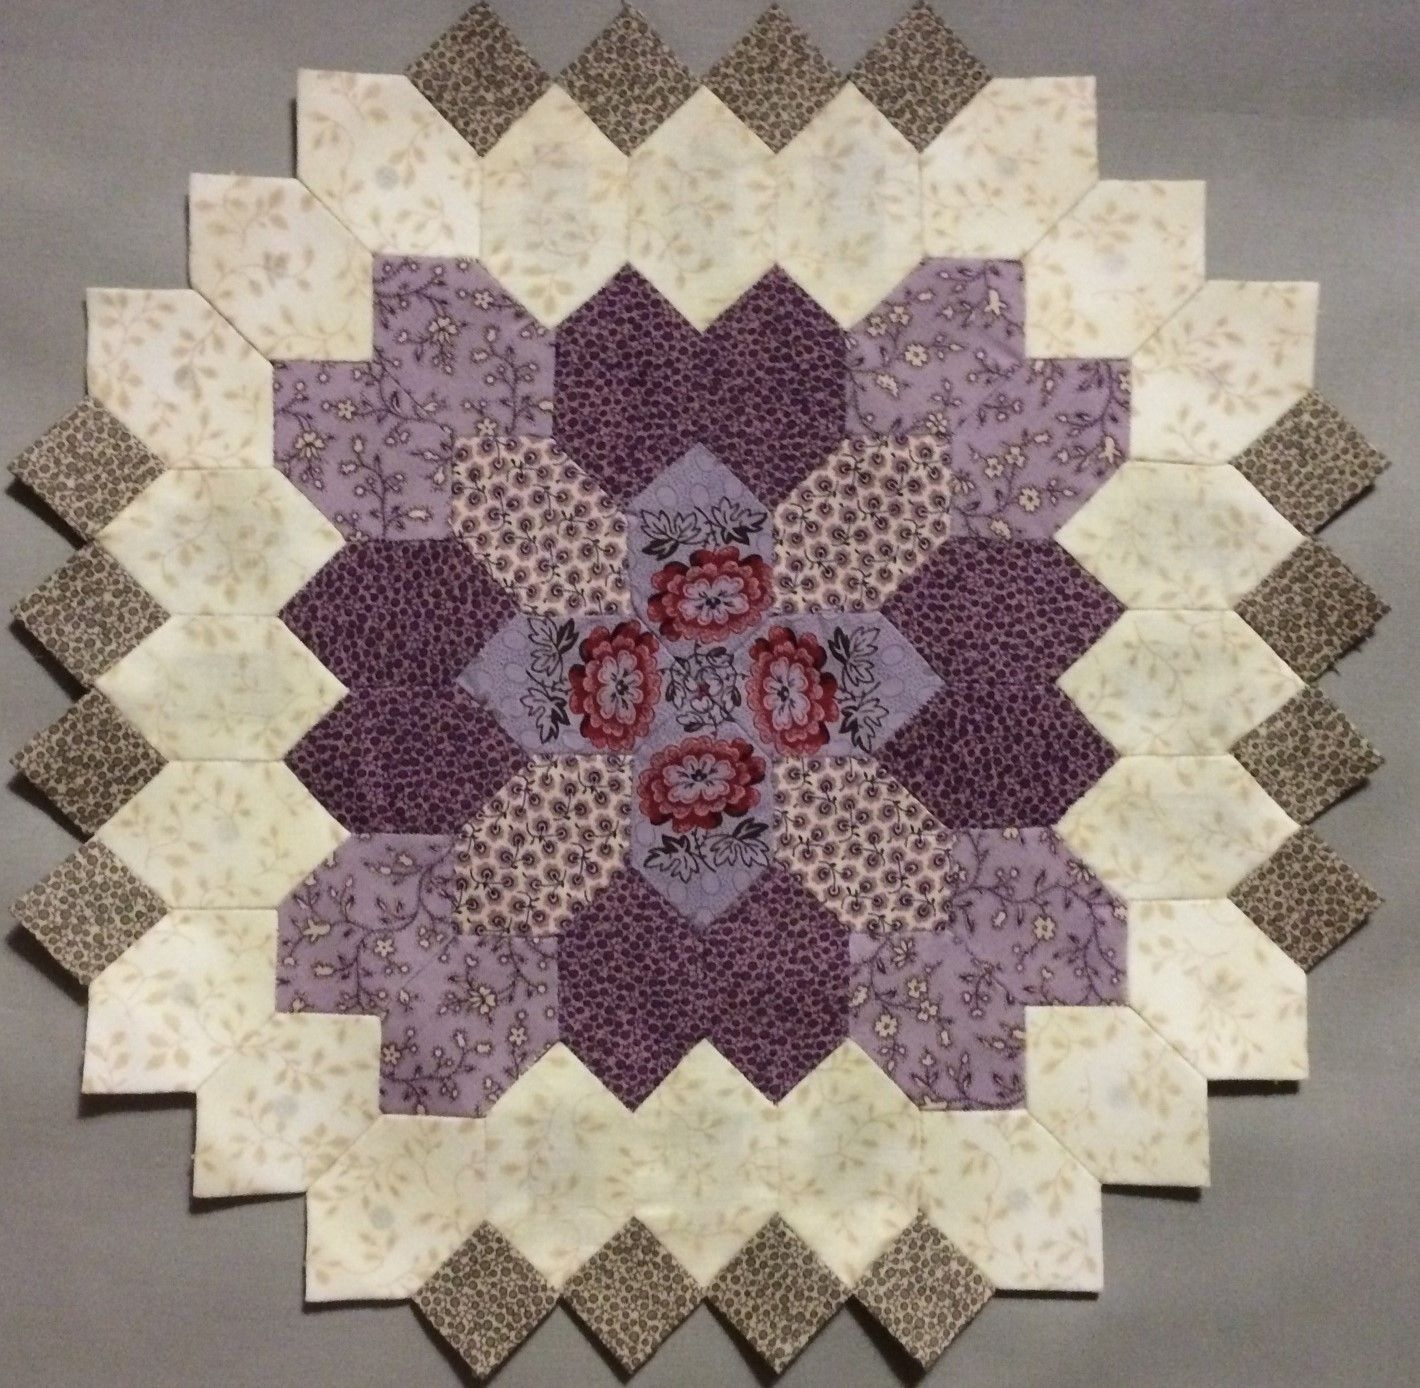 Lovely English Paper Pieced Block.... Lucy Boston POTC quilt block 17 by Carolyn